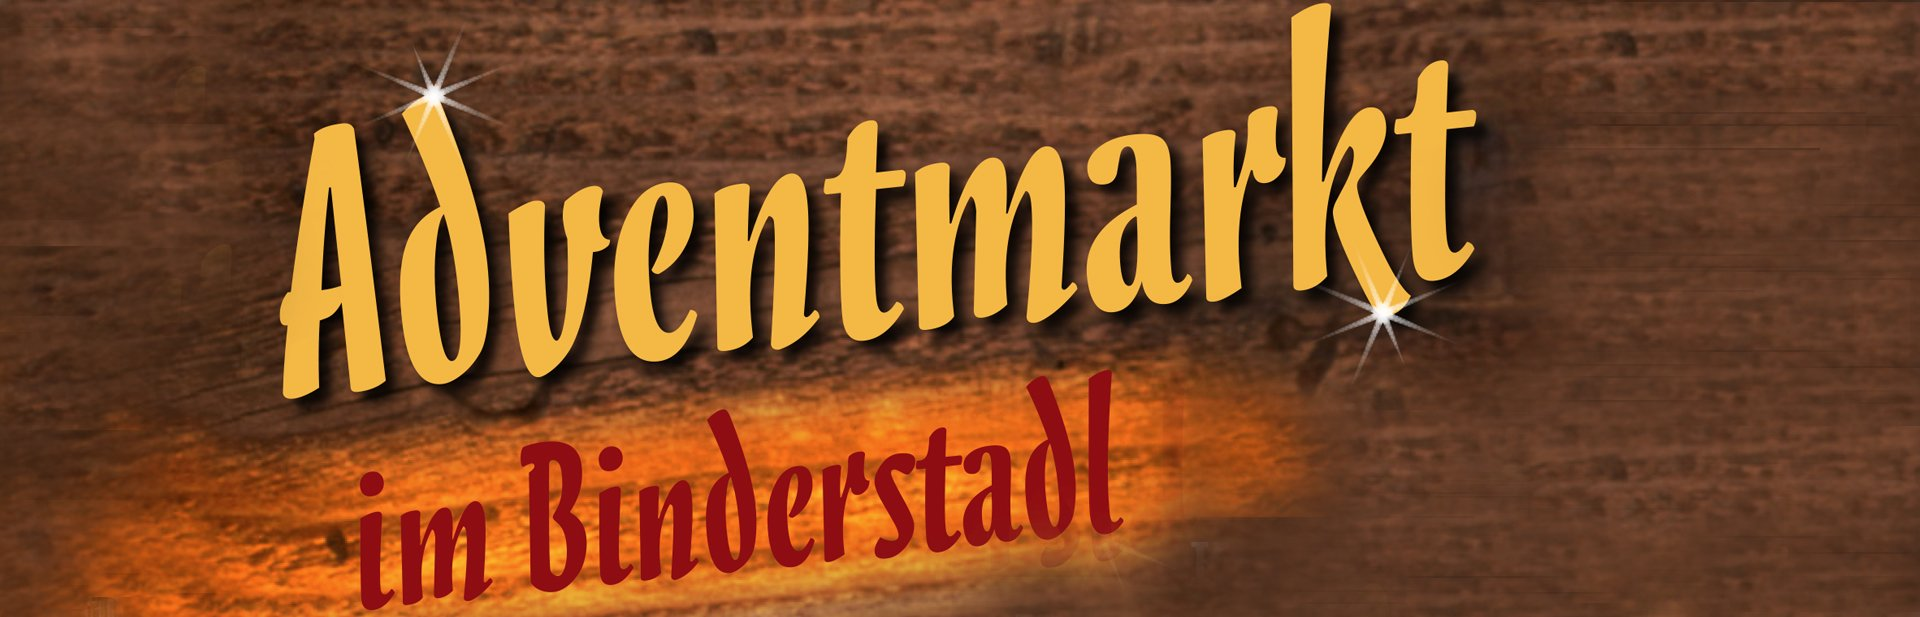 Adventmarkt im Binderstadl